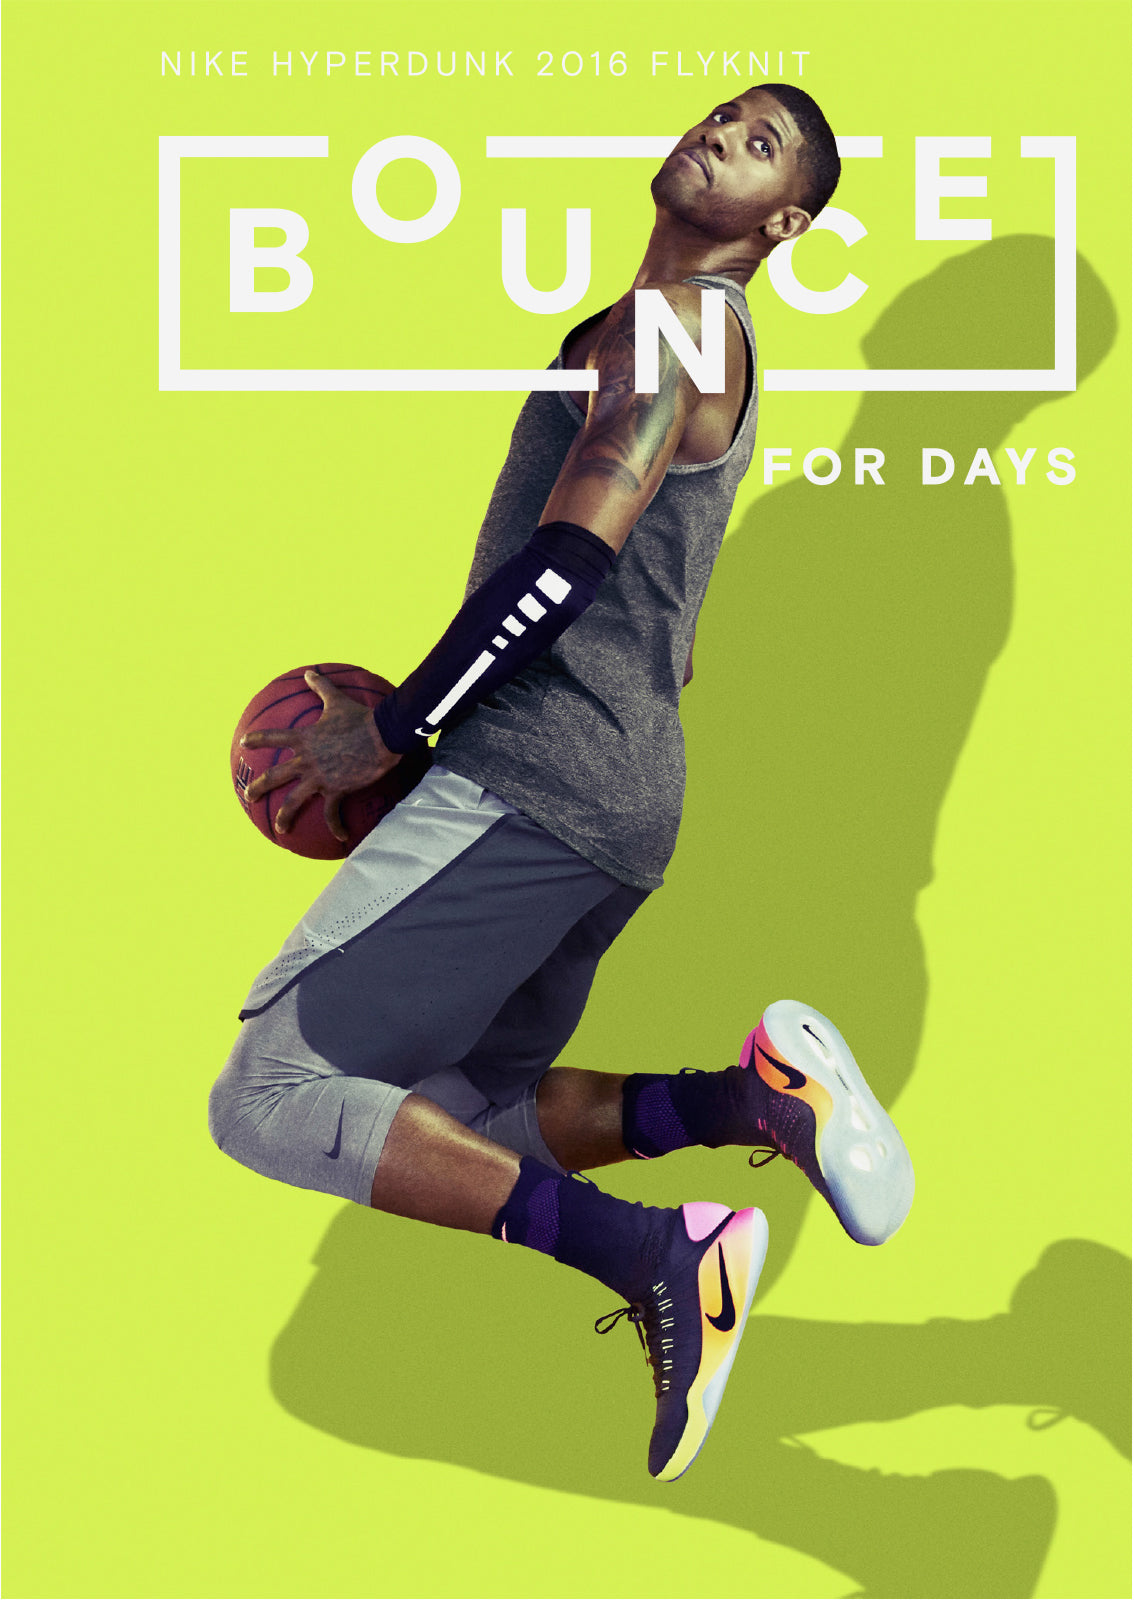 poster design layout nike